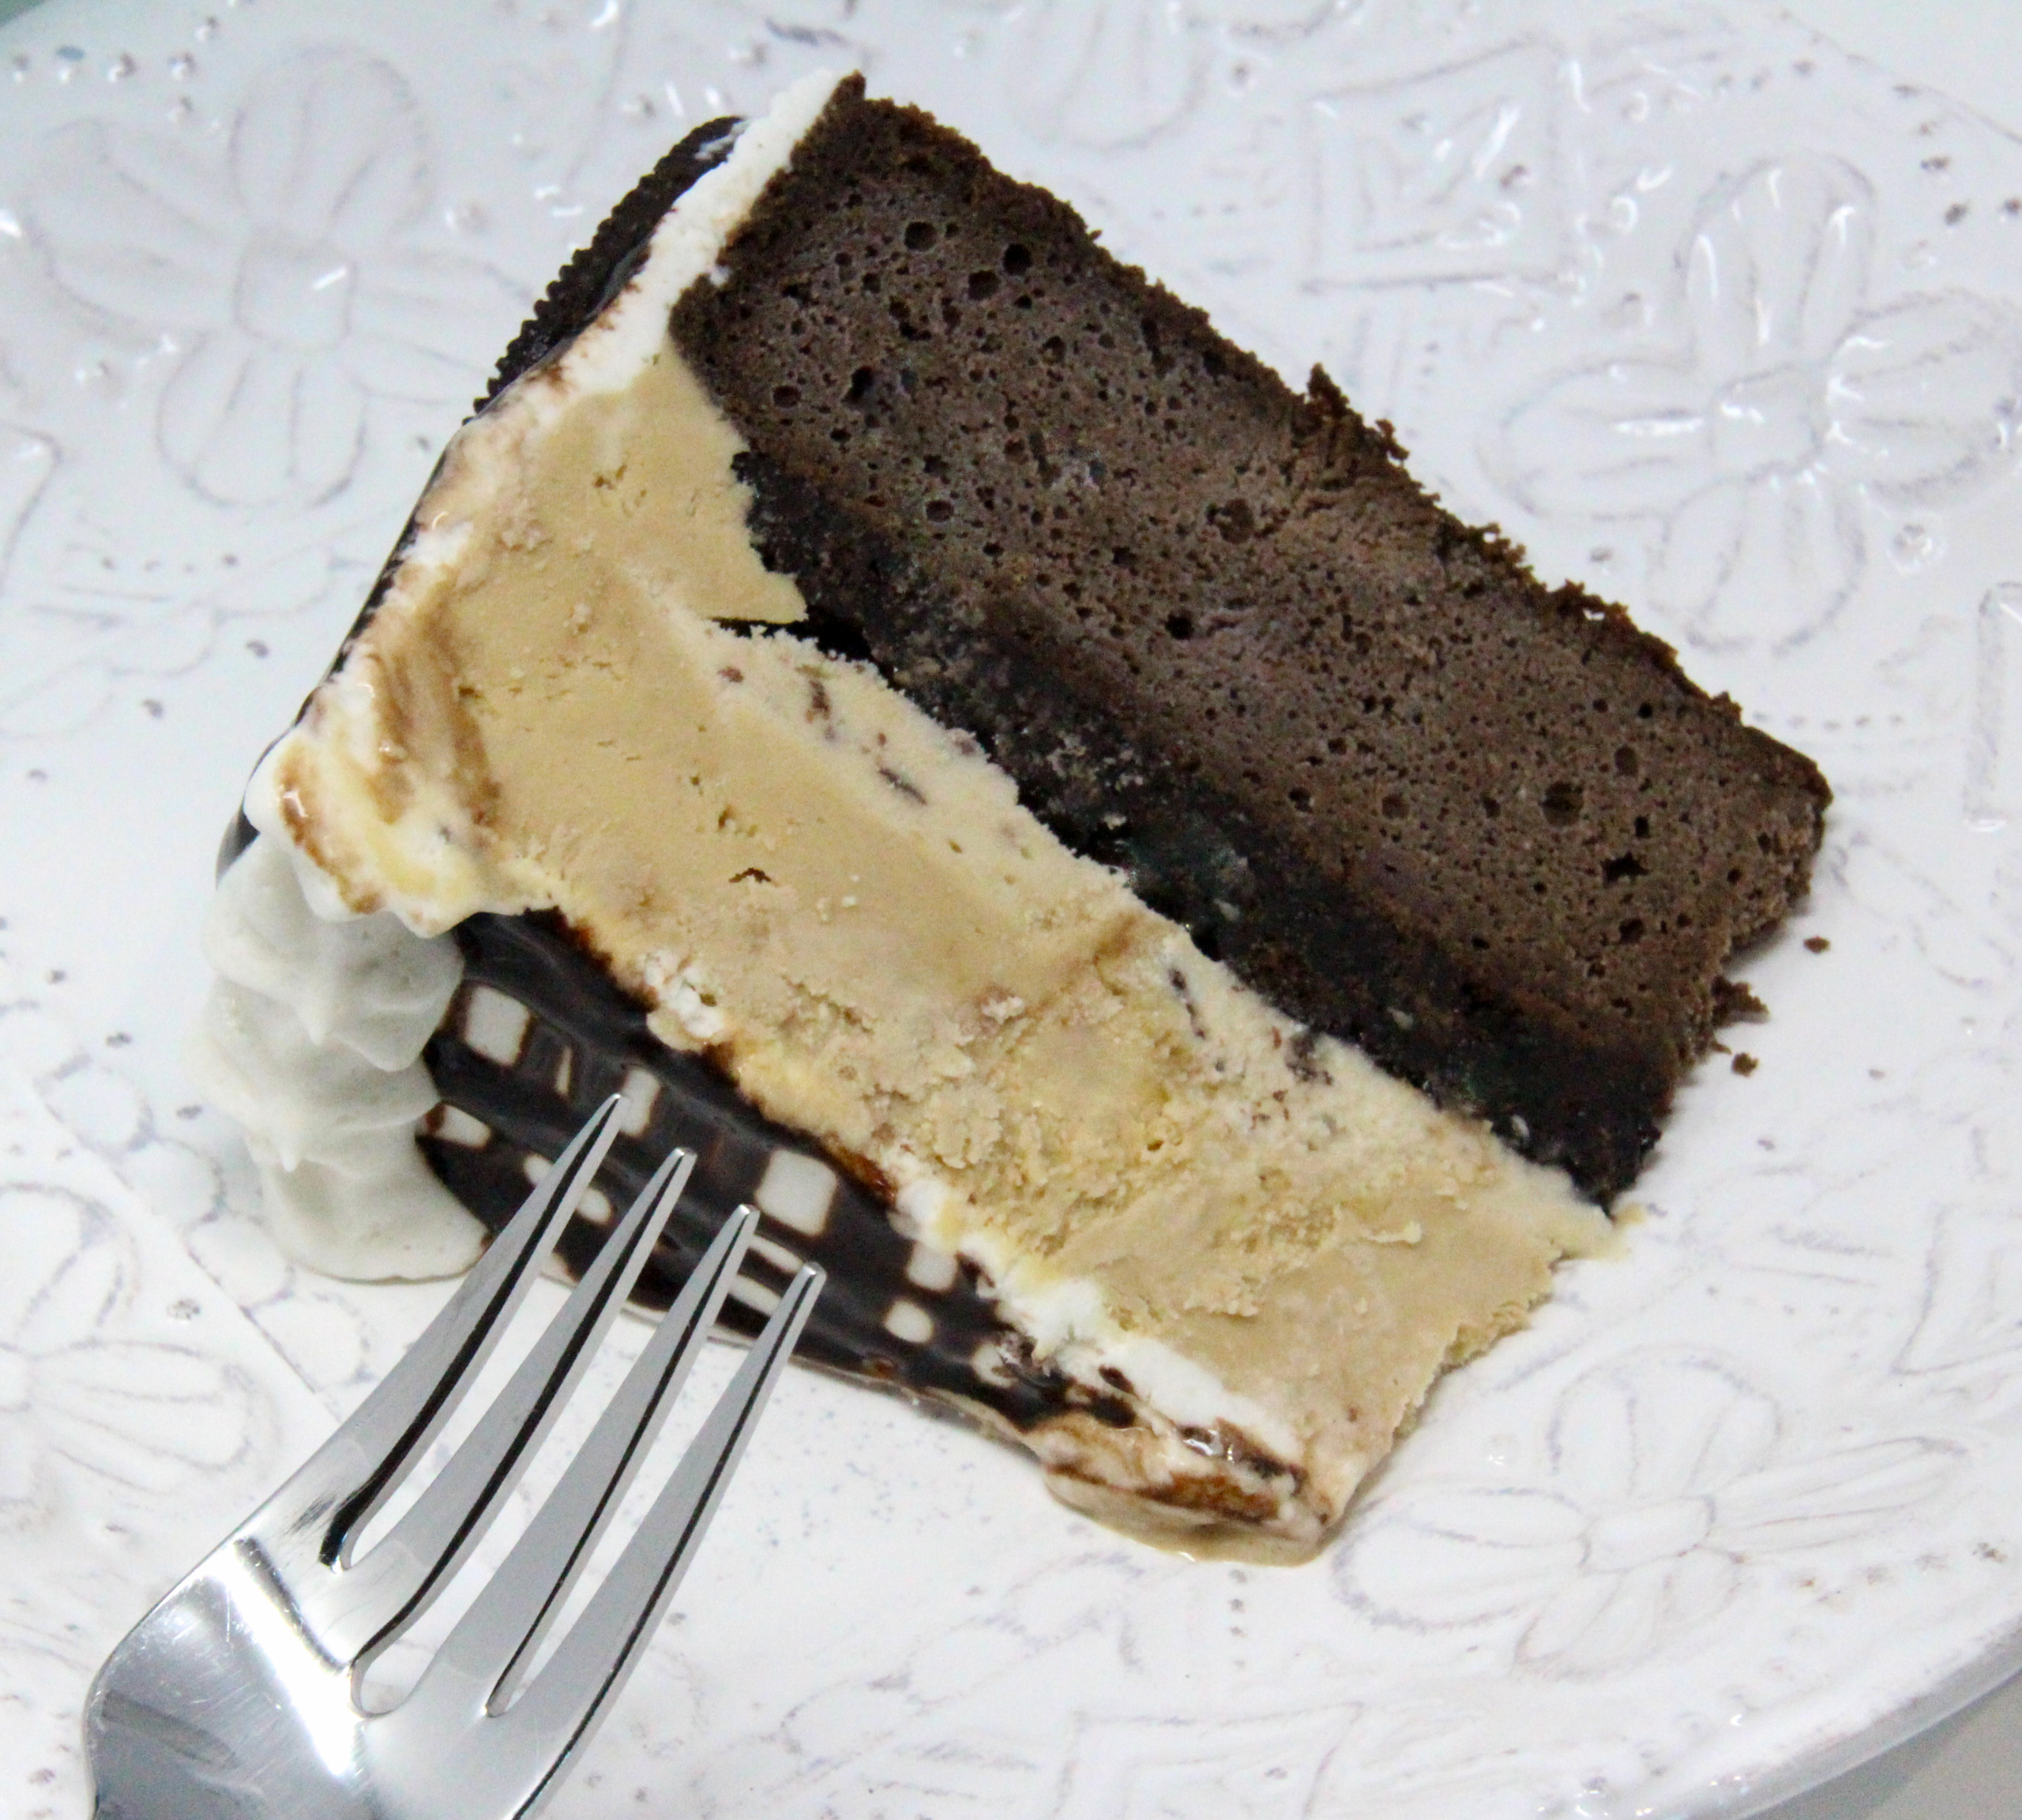 River's Ice Cream Cake is a delectable frozen treat that when served makes any occasion extra special. Using convenience products, it's easier to make than you might think. Recipe shared with permission granted by Maggie Toussaint, author of SHRIMPLY DEAD.